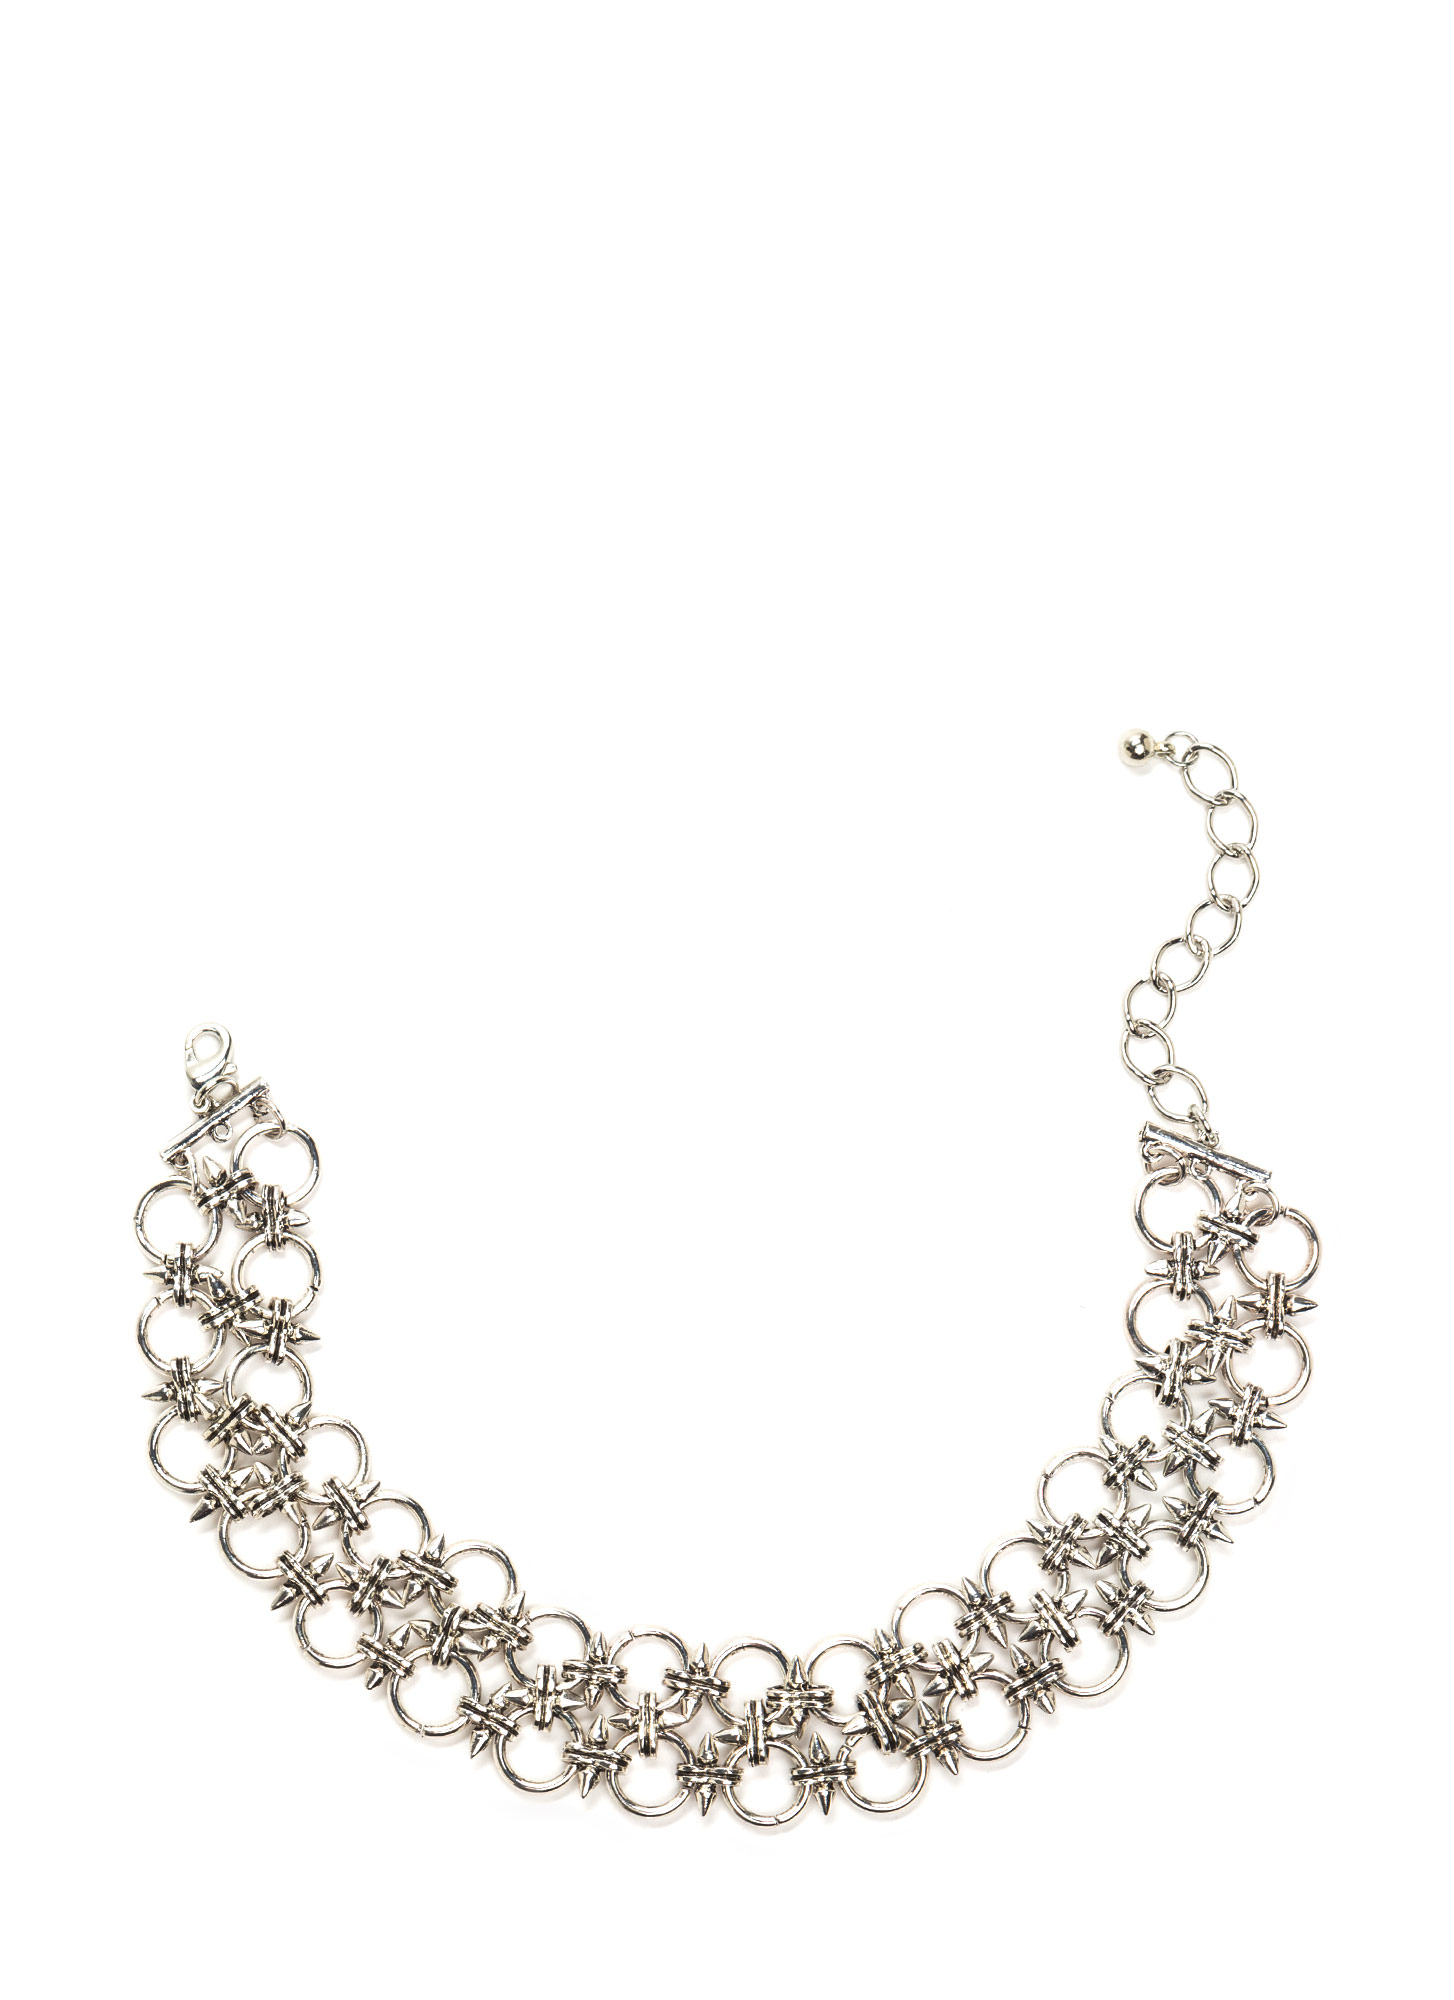 Heavy Metal Chain Choker DKSILVER